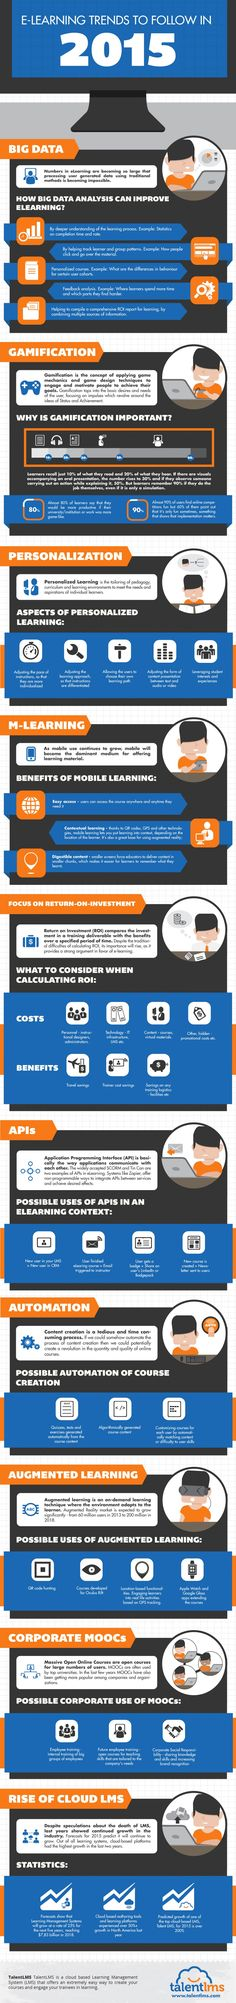 eLearning Trends to Follow in 2015 [INFOGRAPHIC]  http://mrmck.wordpress.com/2014/12/31/elearning-trends-to-follow-in-2015-infographic/